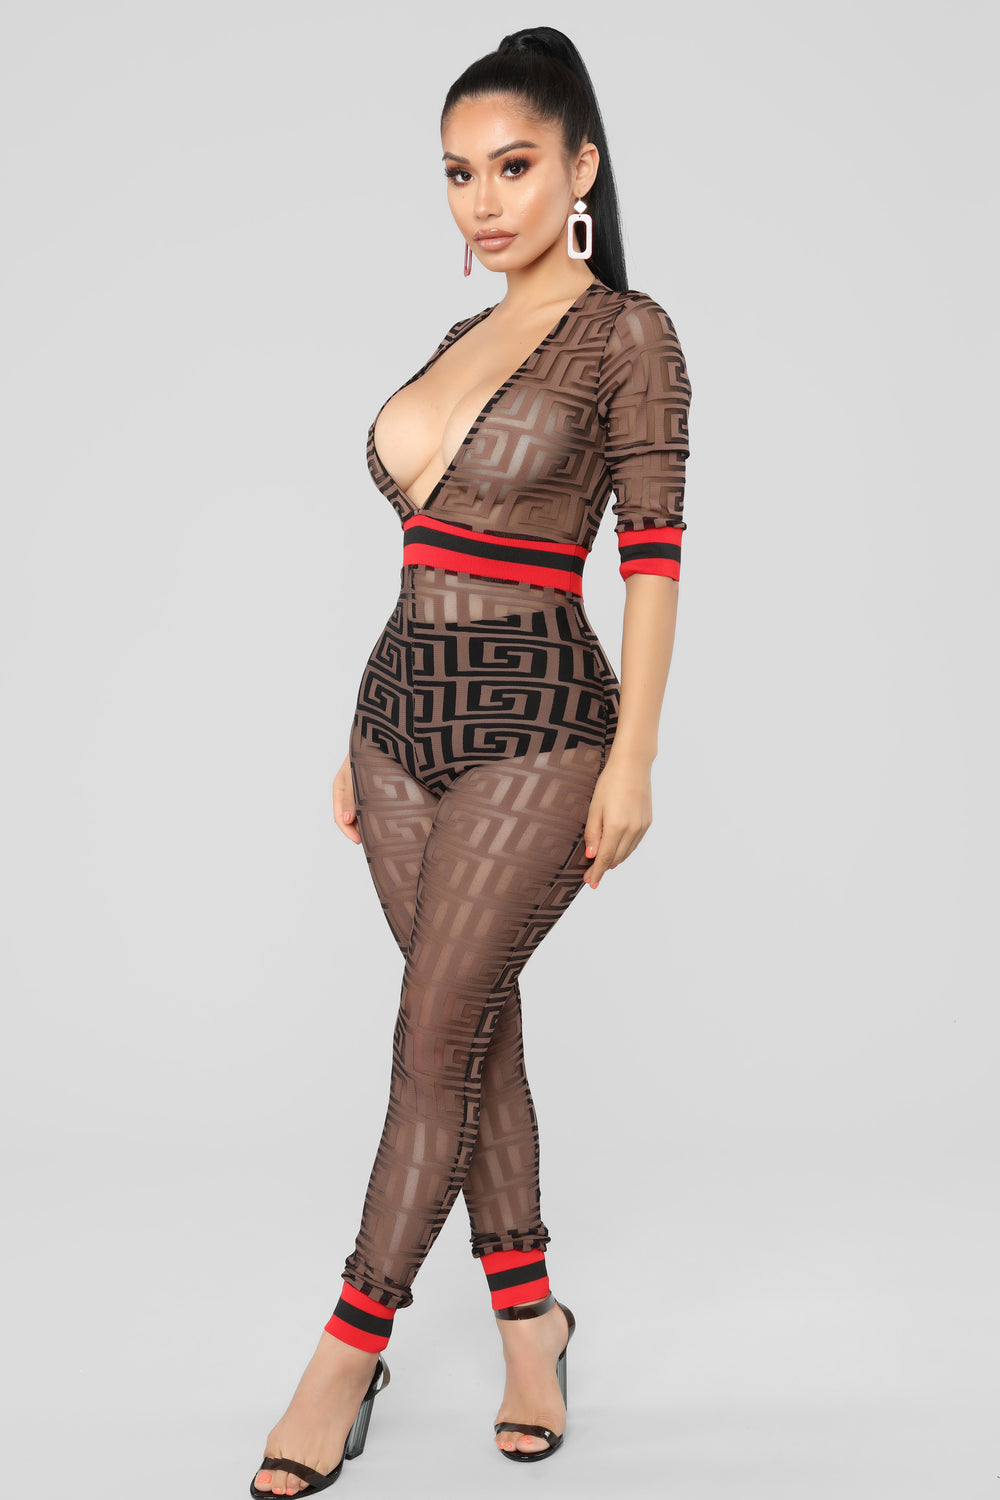 Can't Forget Me Mesh Jumpsuit - Brown